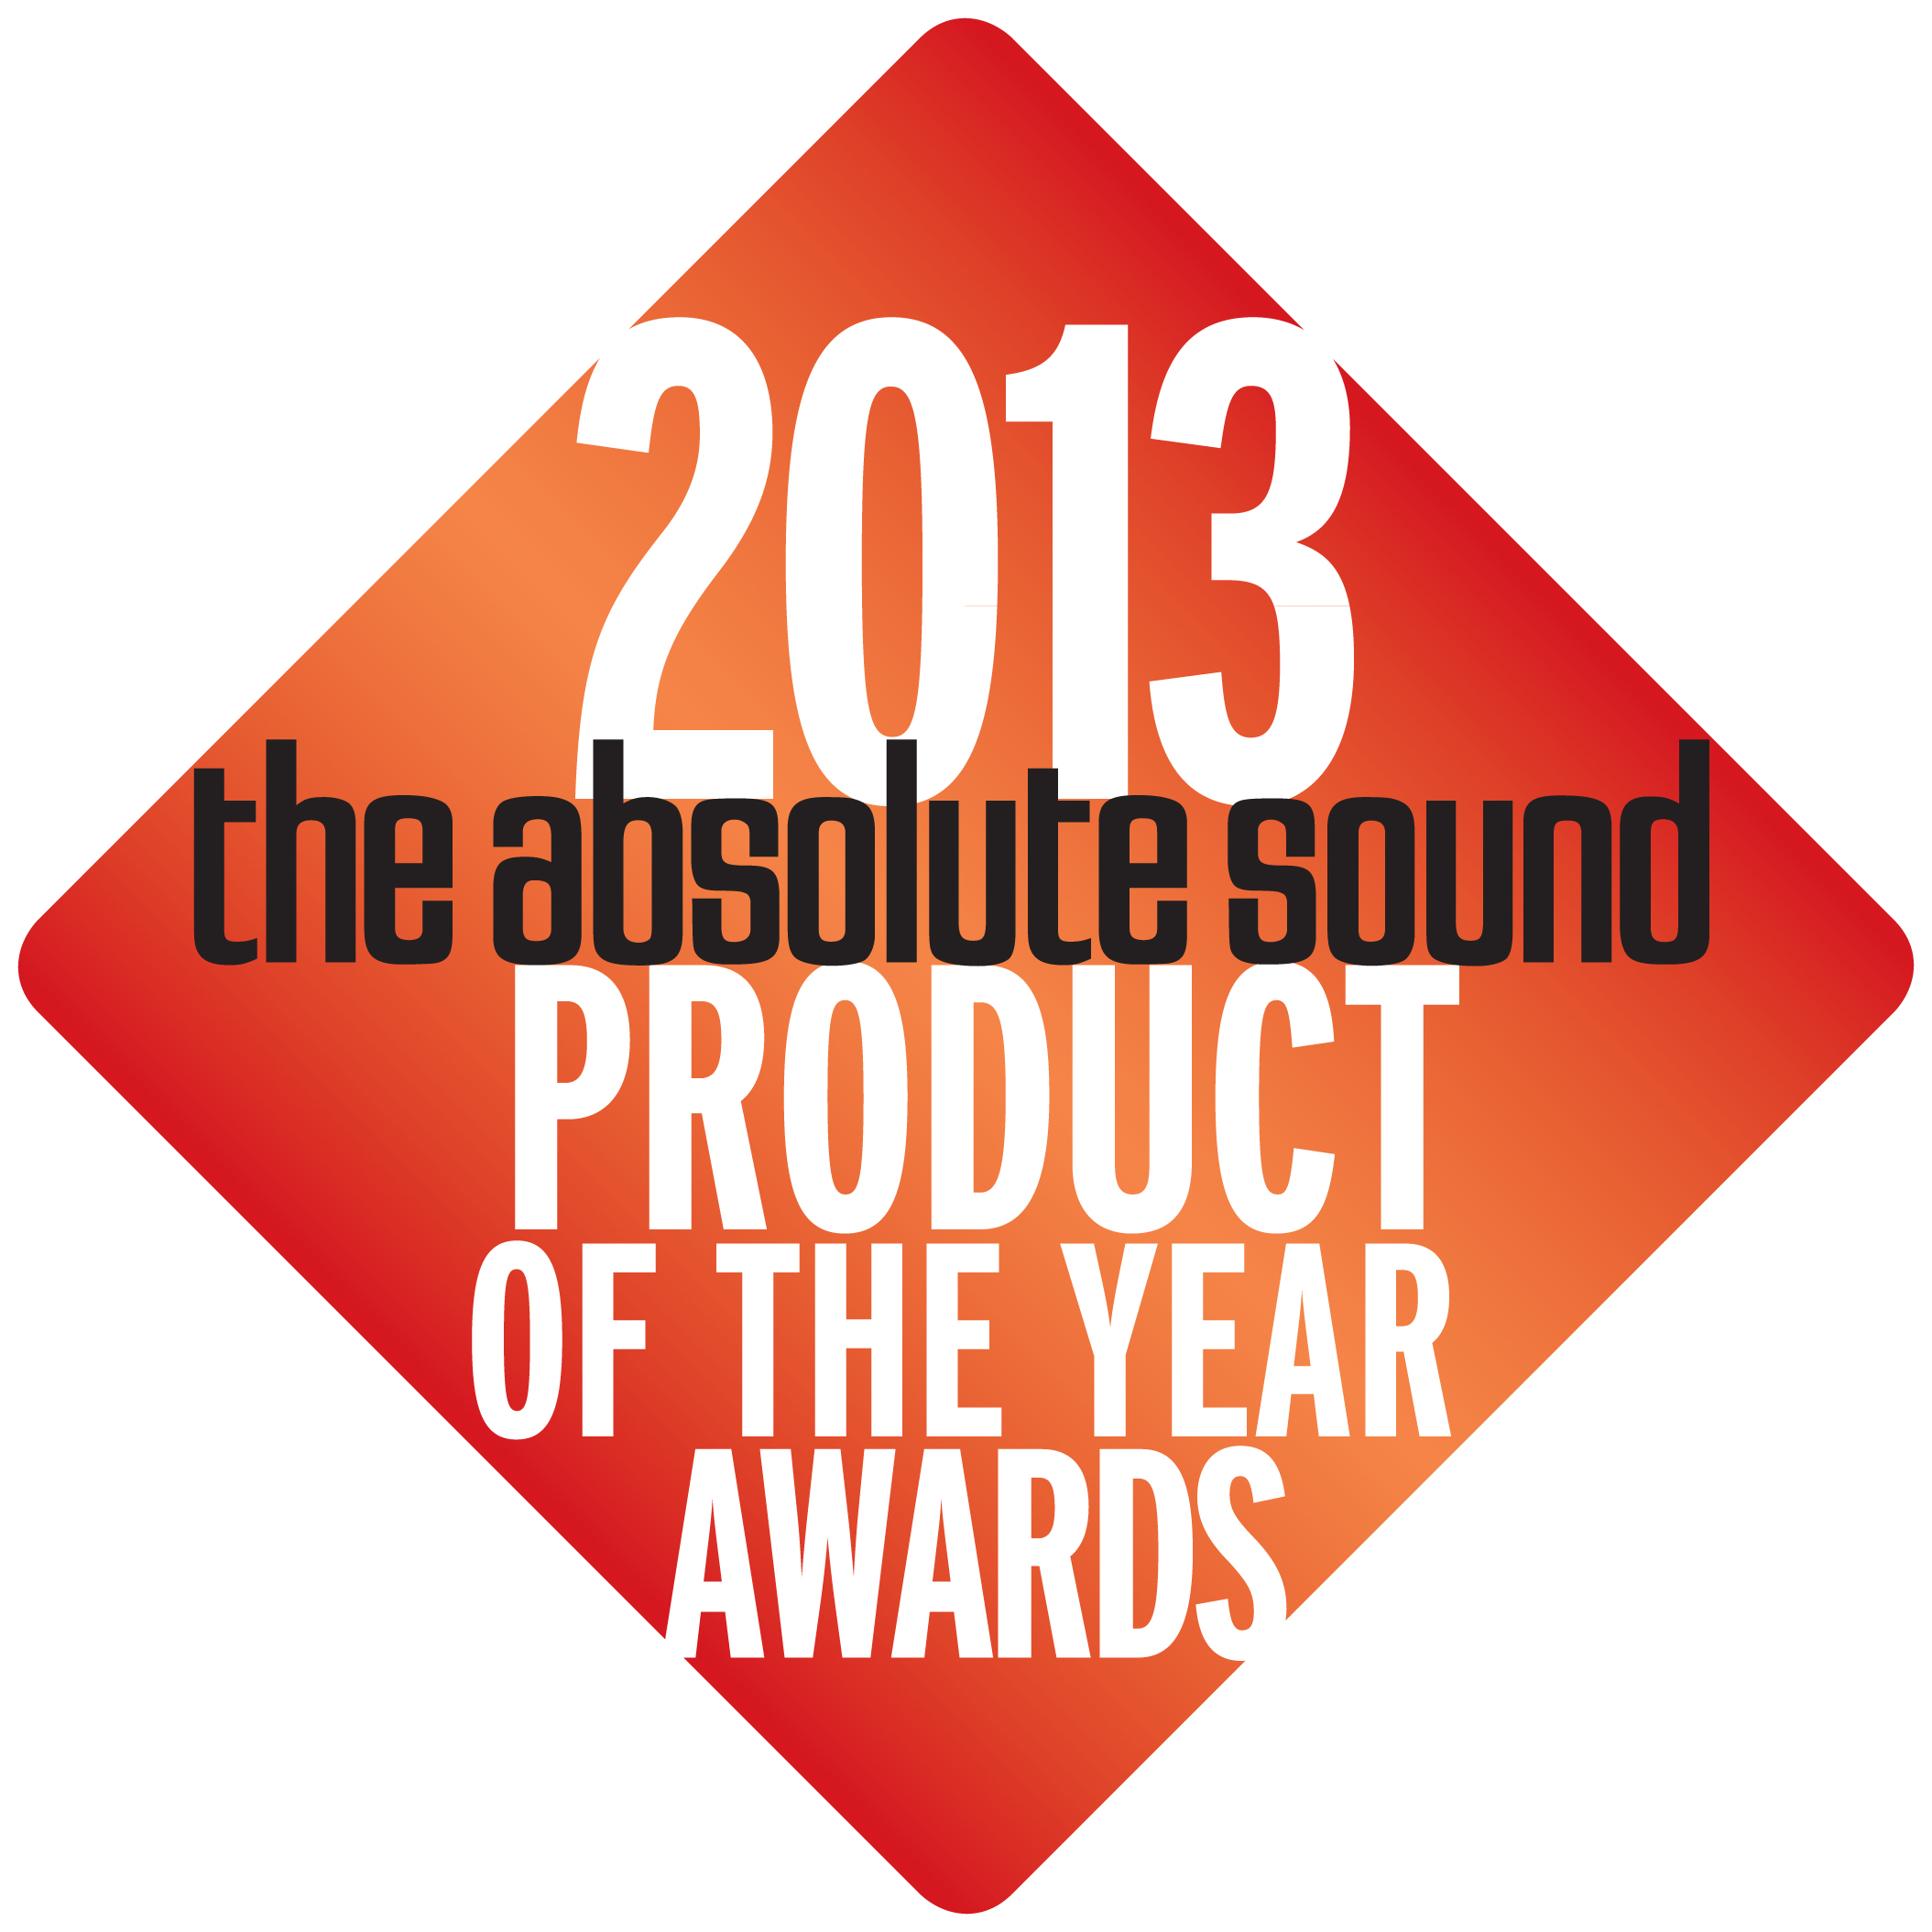 Absolute Sound Product of the Year Award for Triton Seven